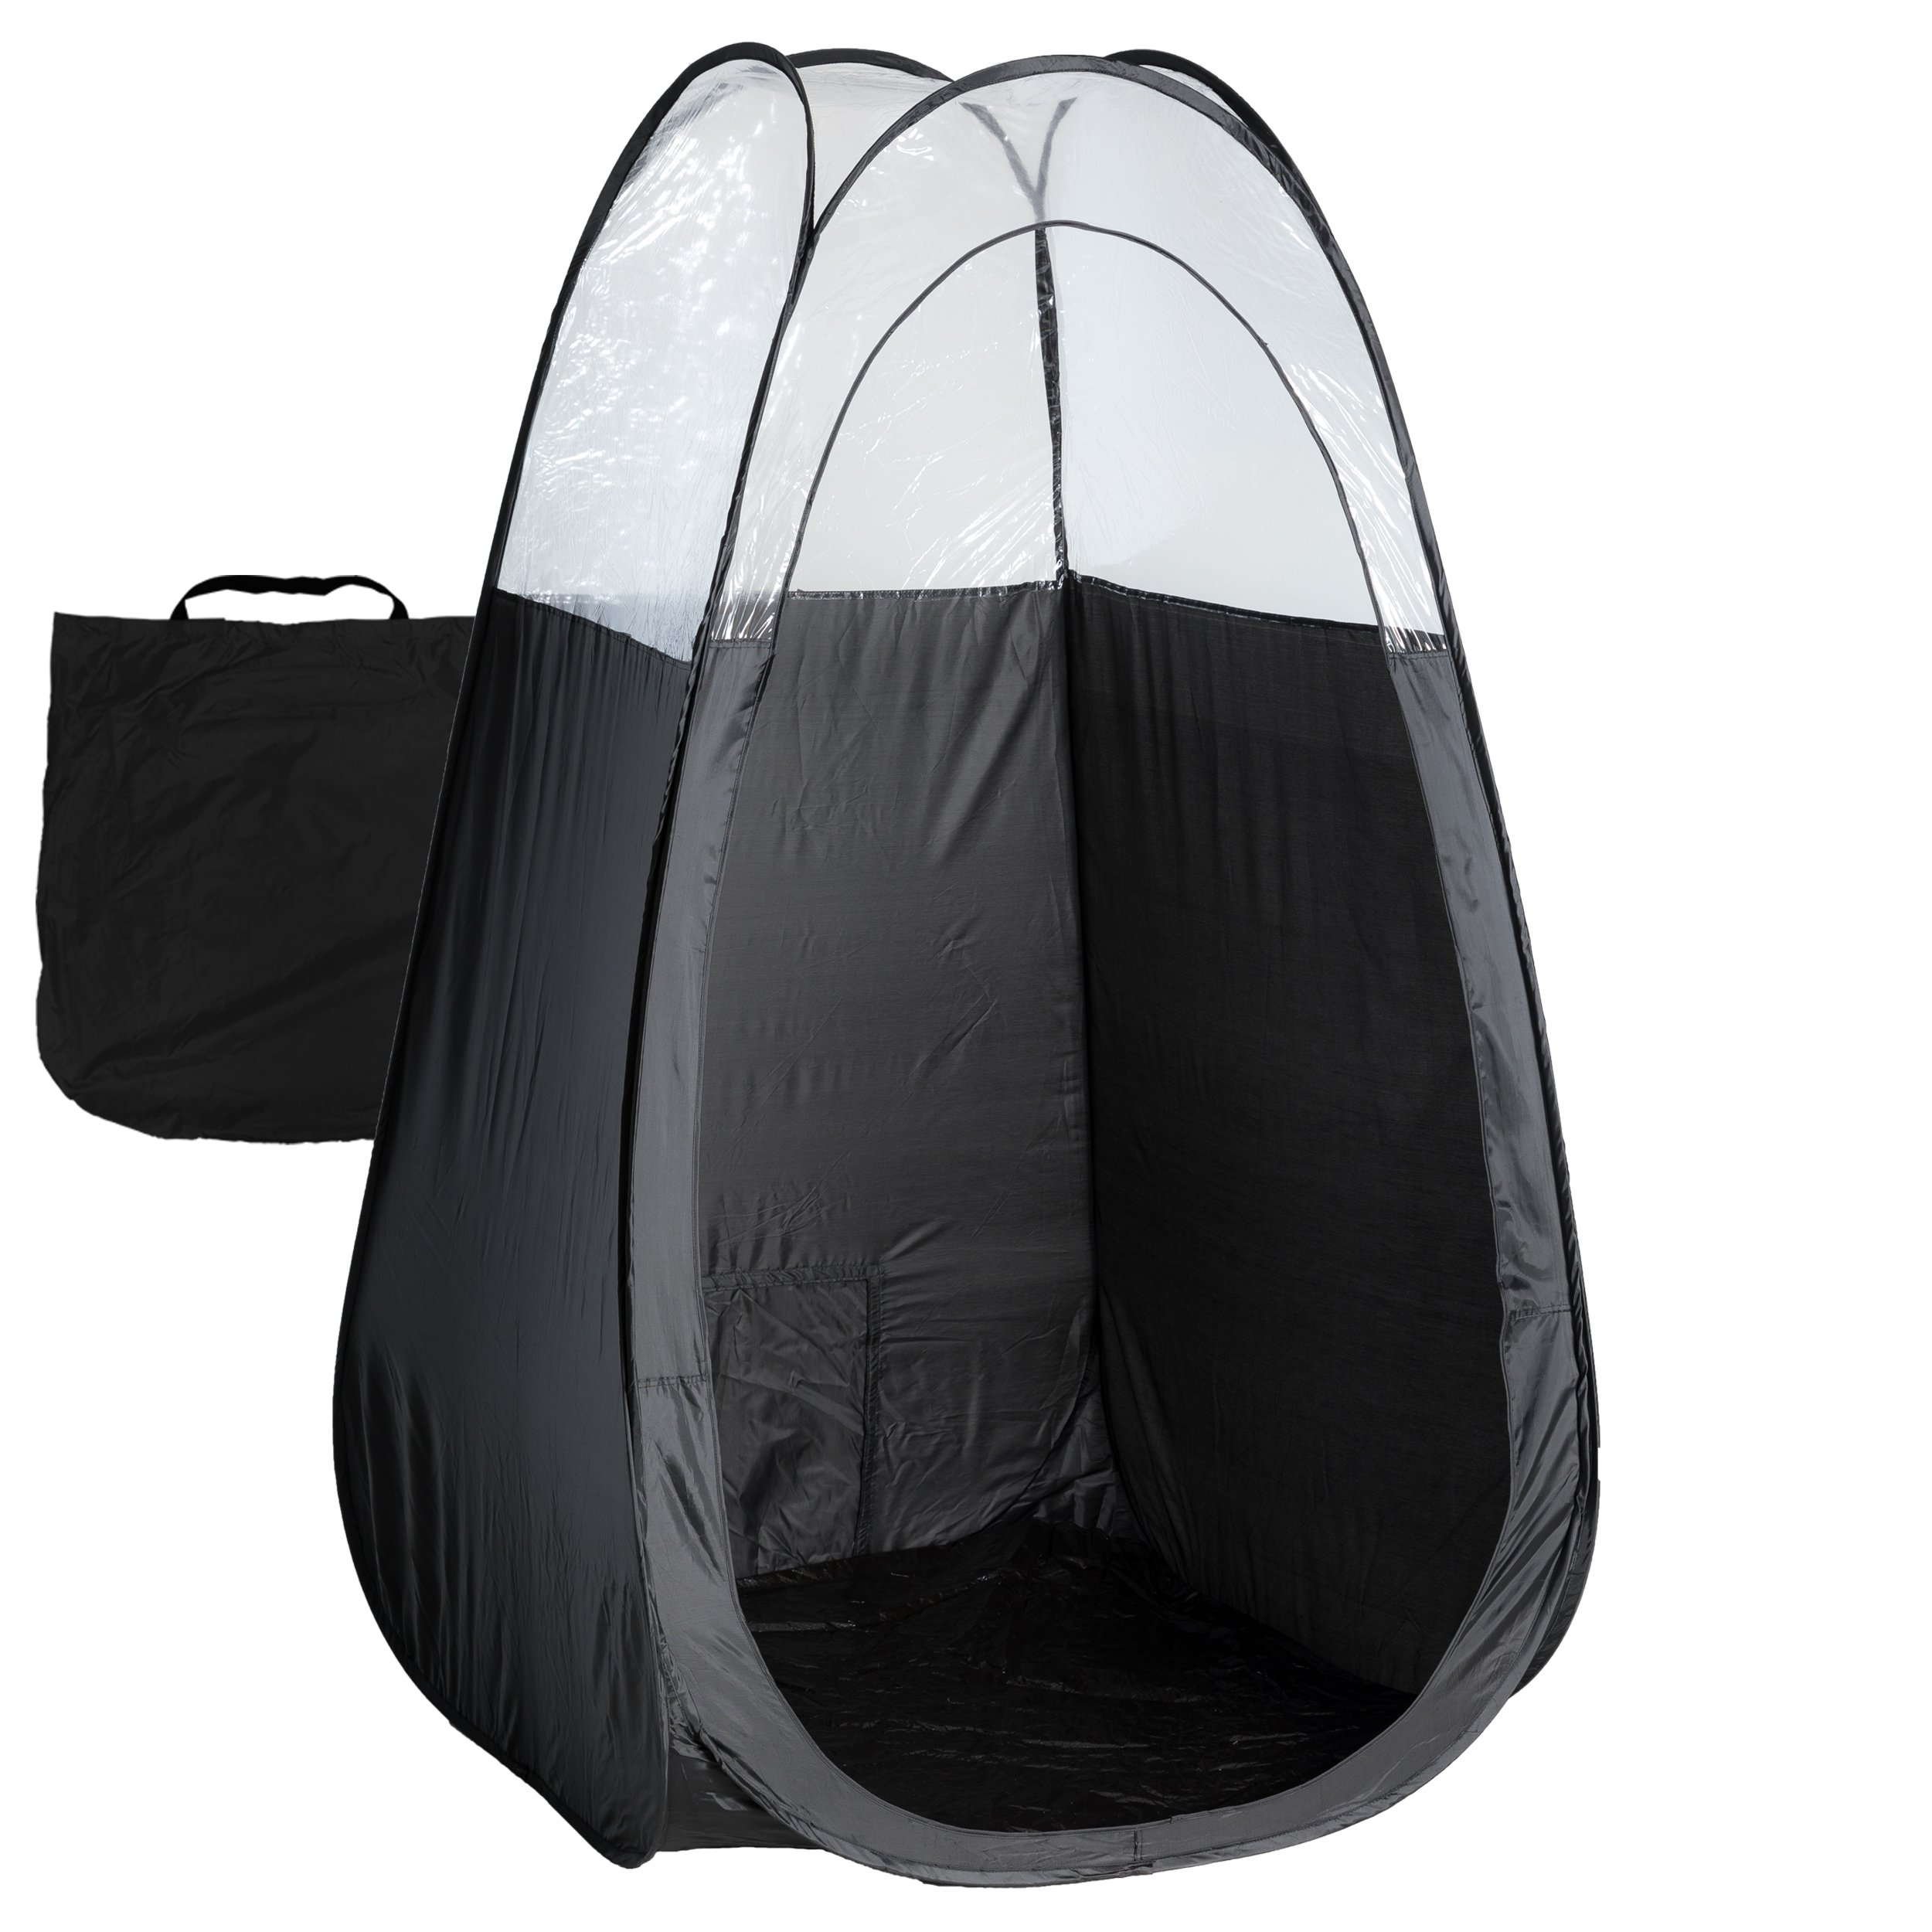 Black Spray Tan Tent with Carry Bag - Large by ECV Brands